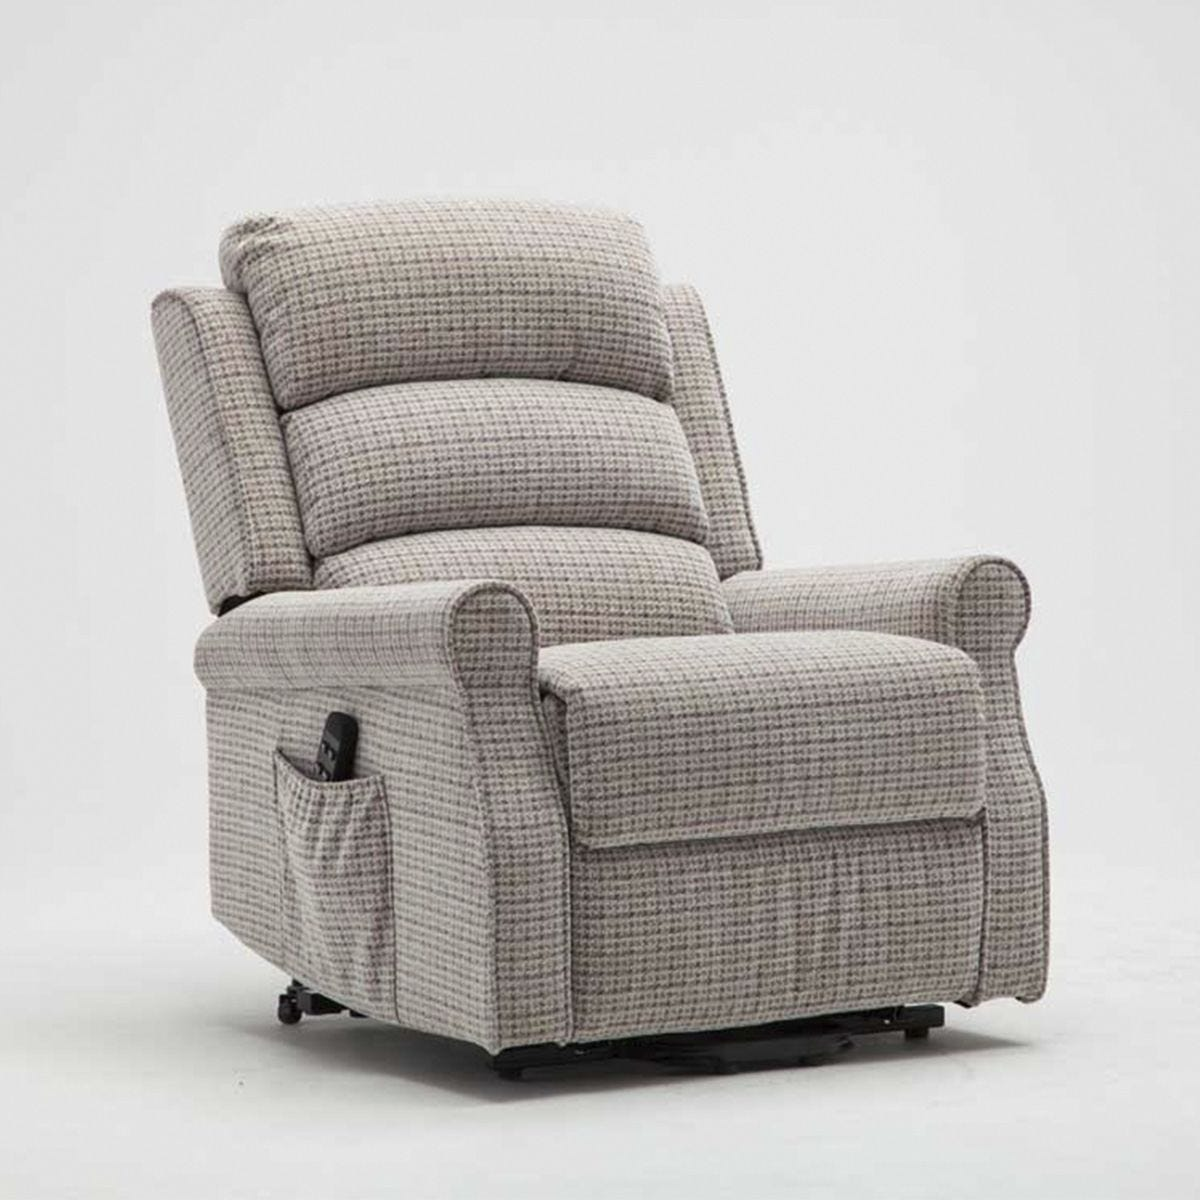 Balio Twin Motor Rise & Recline Cair (Normal Width) - Natural